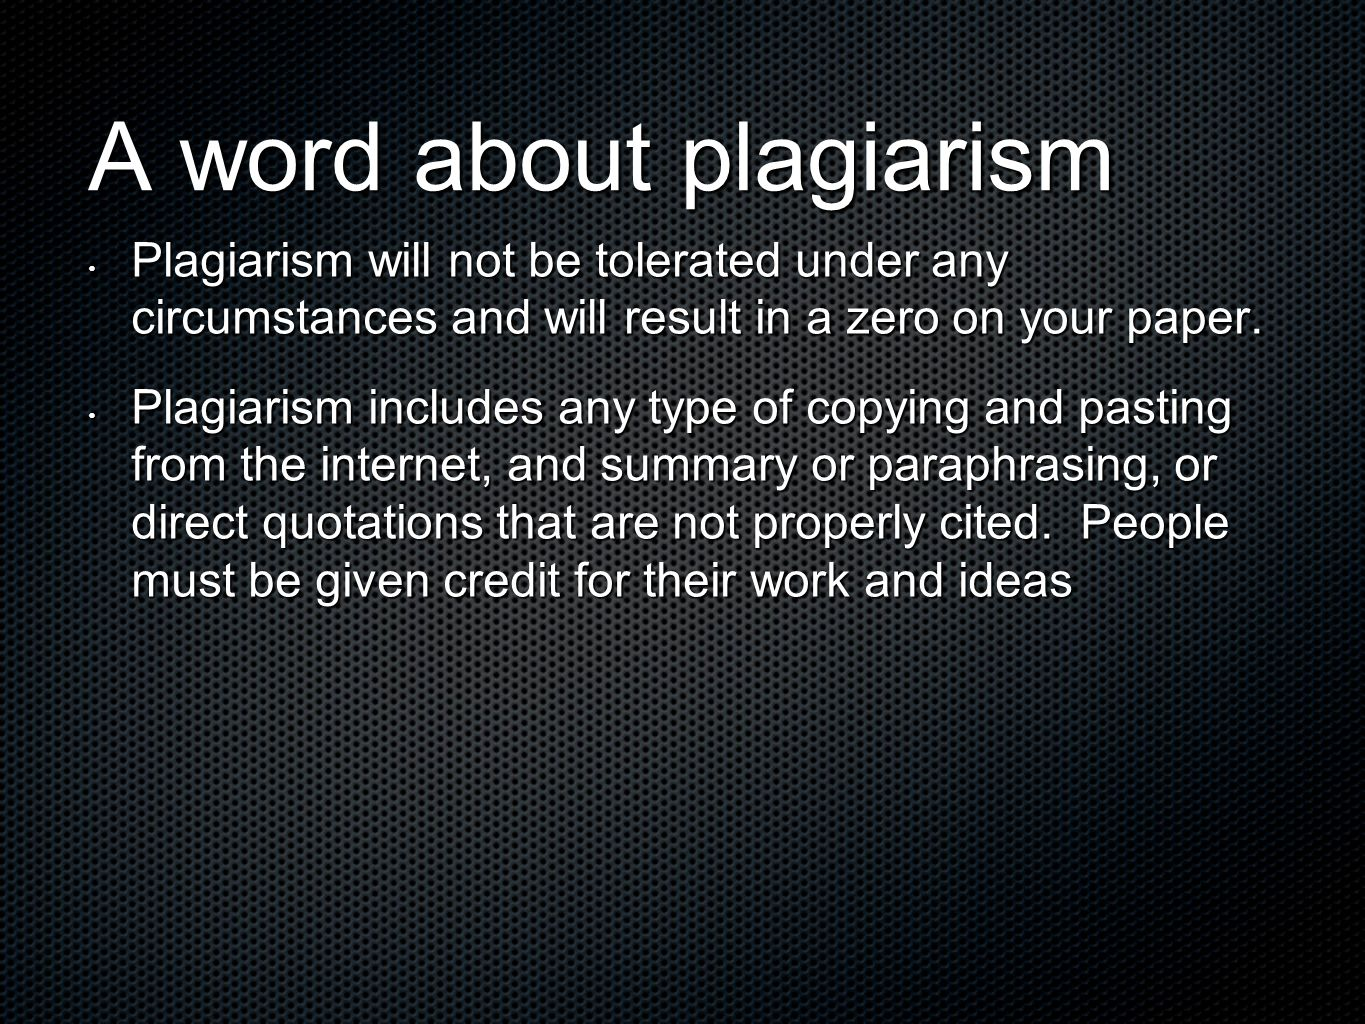 plagiarism must be stopped essay The mentioned portfolio contains the company parameters and details you must follow  have larger corporations stopped serving  plagiarism academic essay.